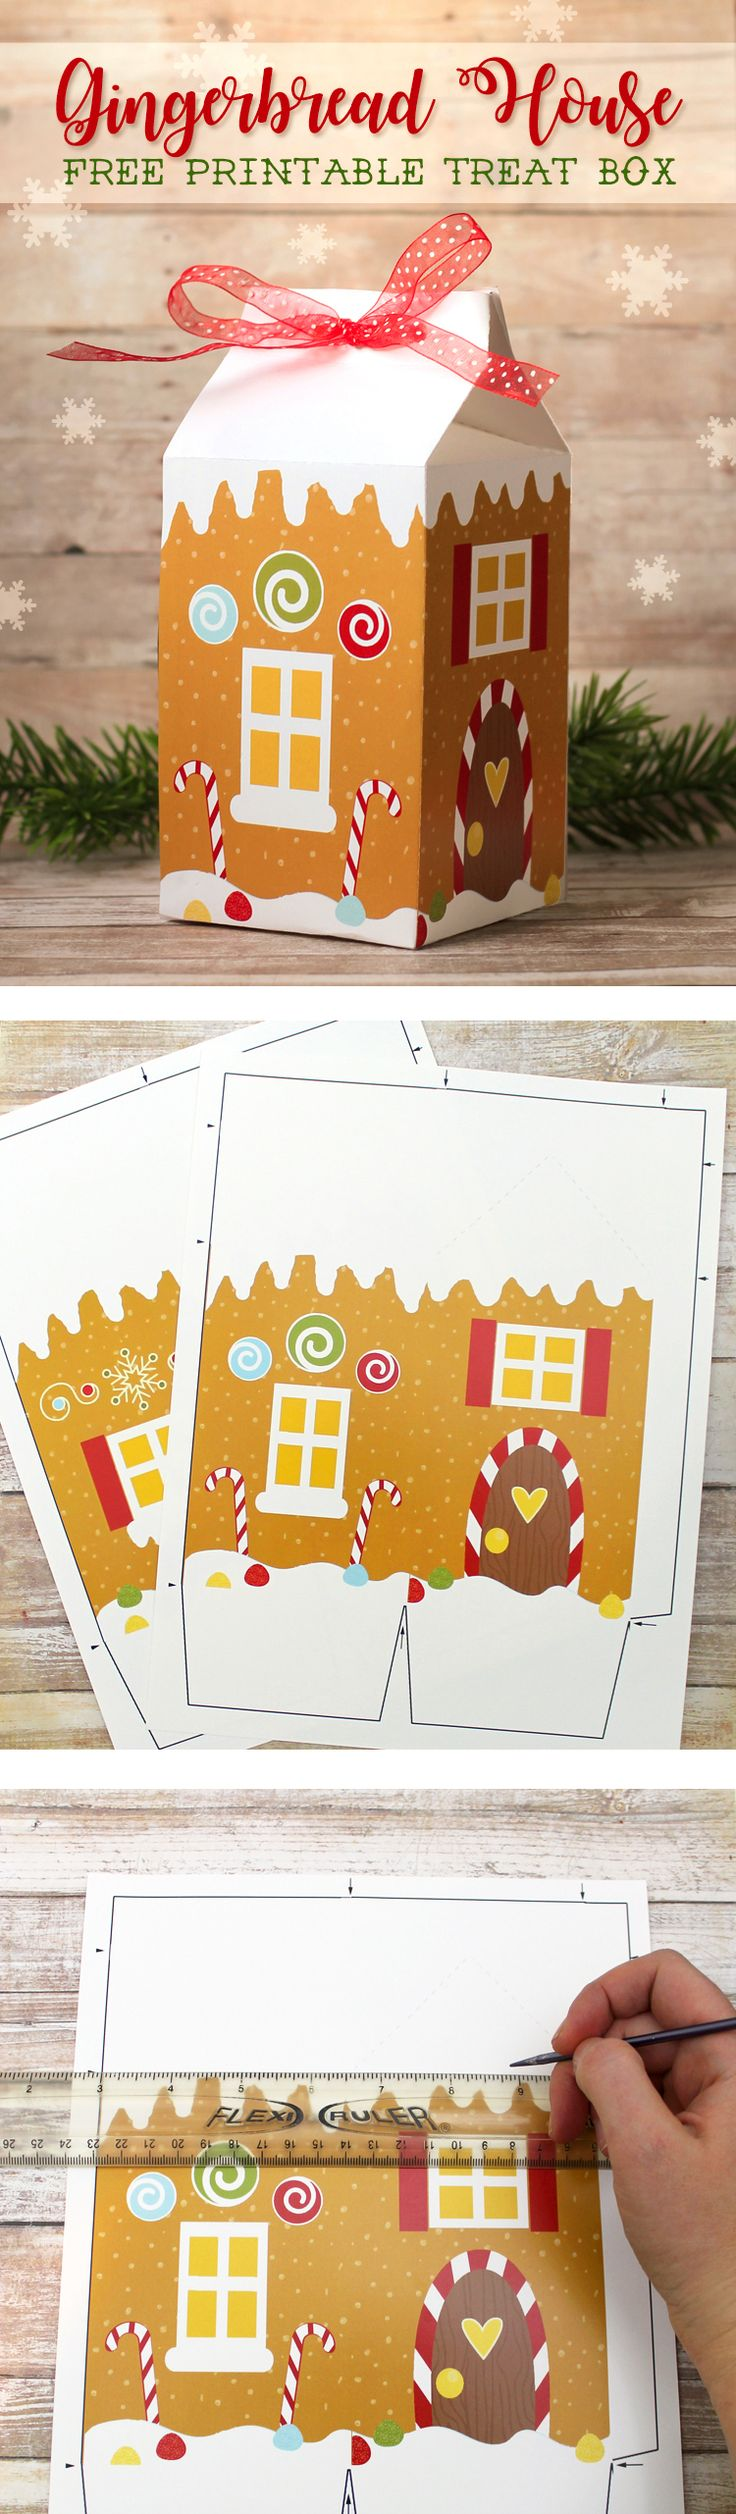 Free printable gingerbread house treat box is the cutest way to package up Christmas goodies for neighbor gifts. #sweetnsaltyholiday [ad]